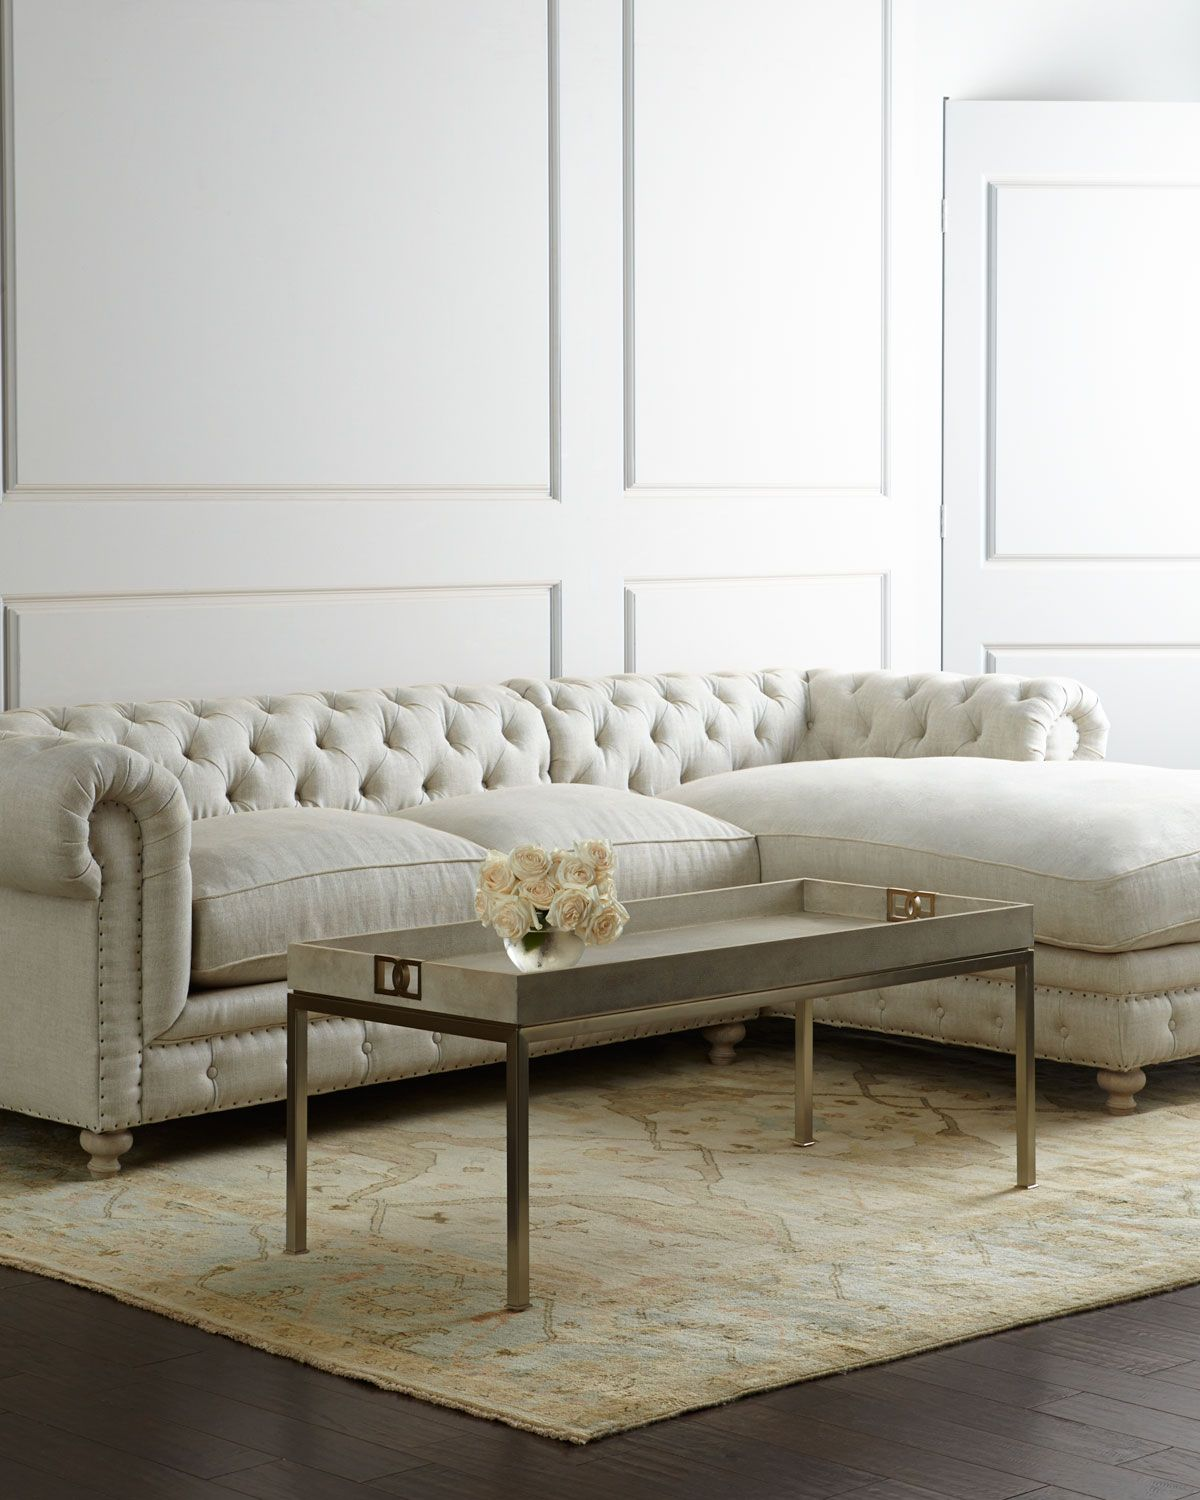 tufted linen sectional sofa 2 piece covers uk warner matching items neiman marcus